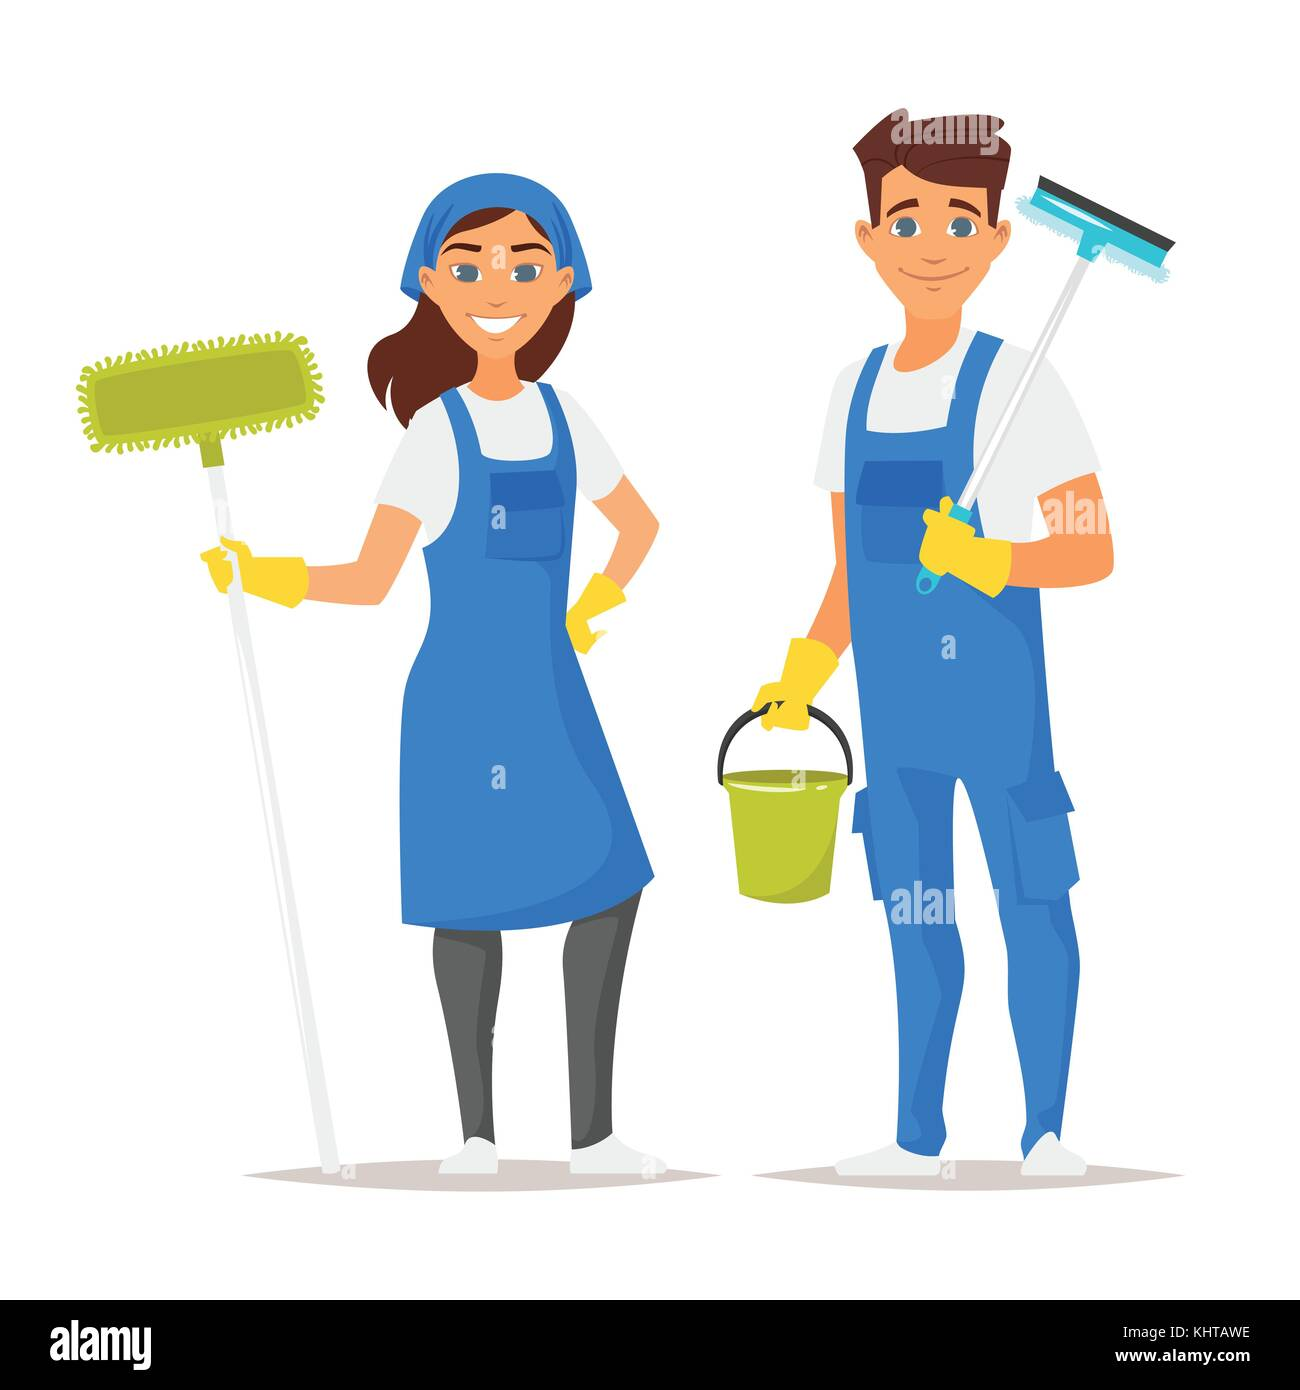 People Cleaning Kitchen: Vector Cartoon Style Illustration Of Cleaning Service Man